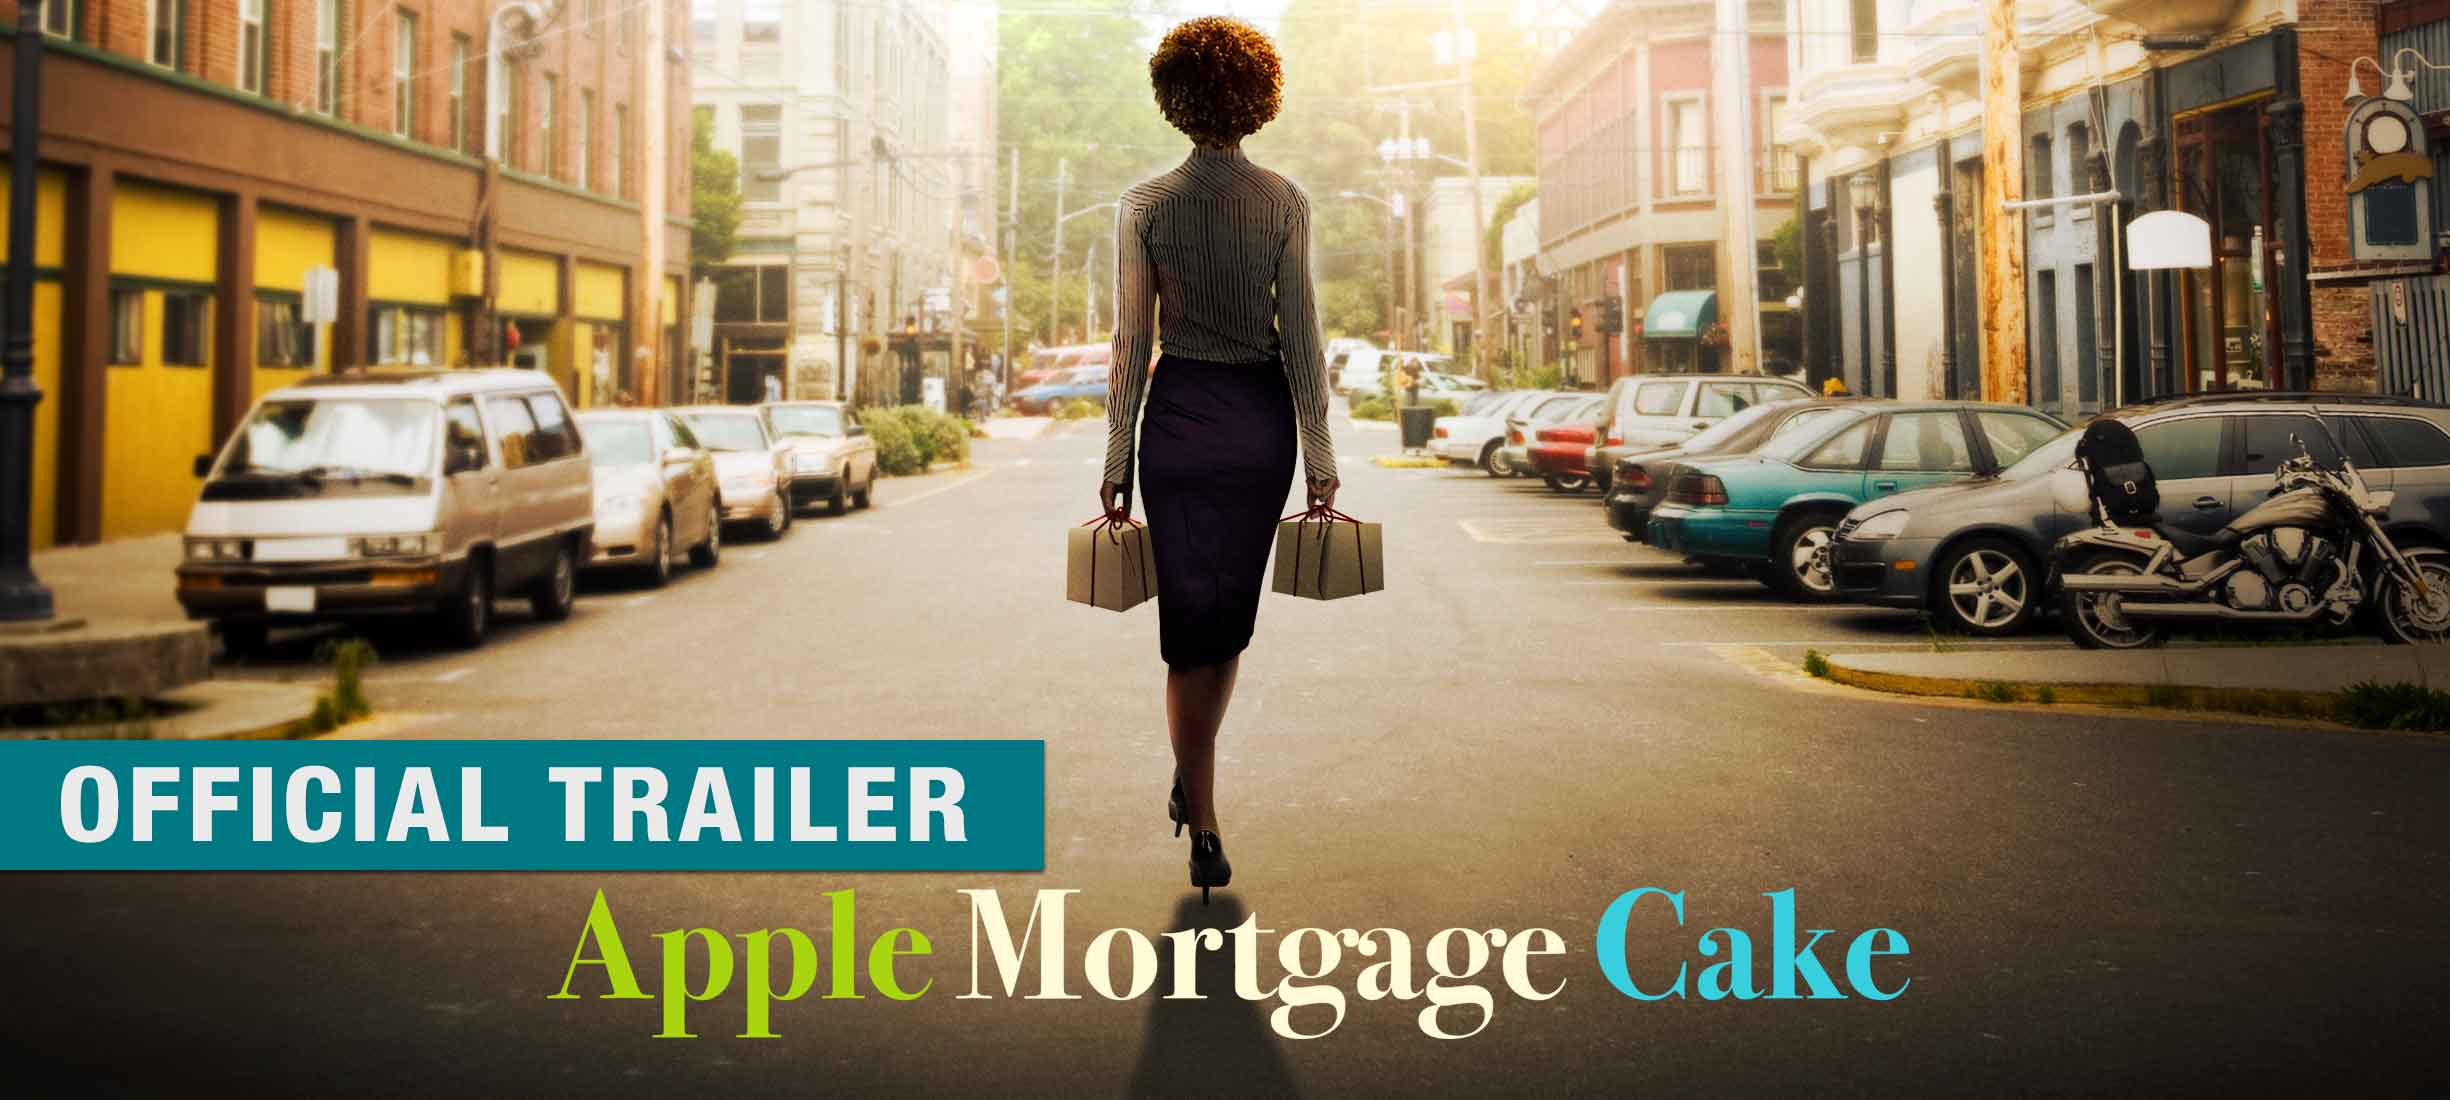 Apple Mortgage Cake: Trailer